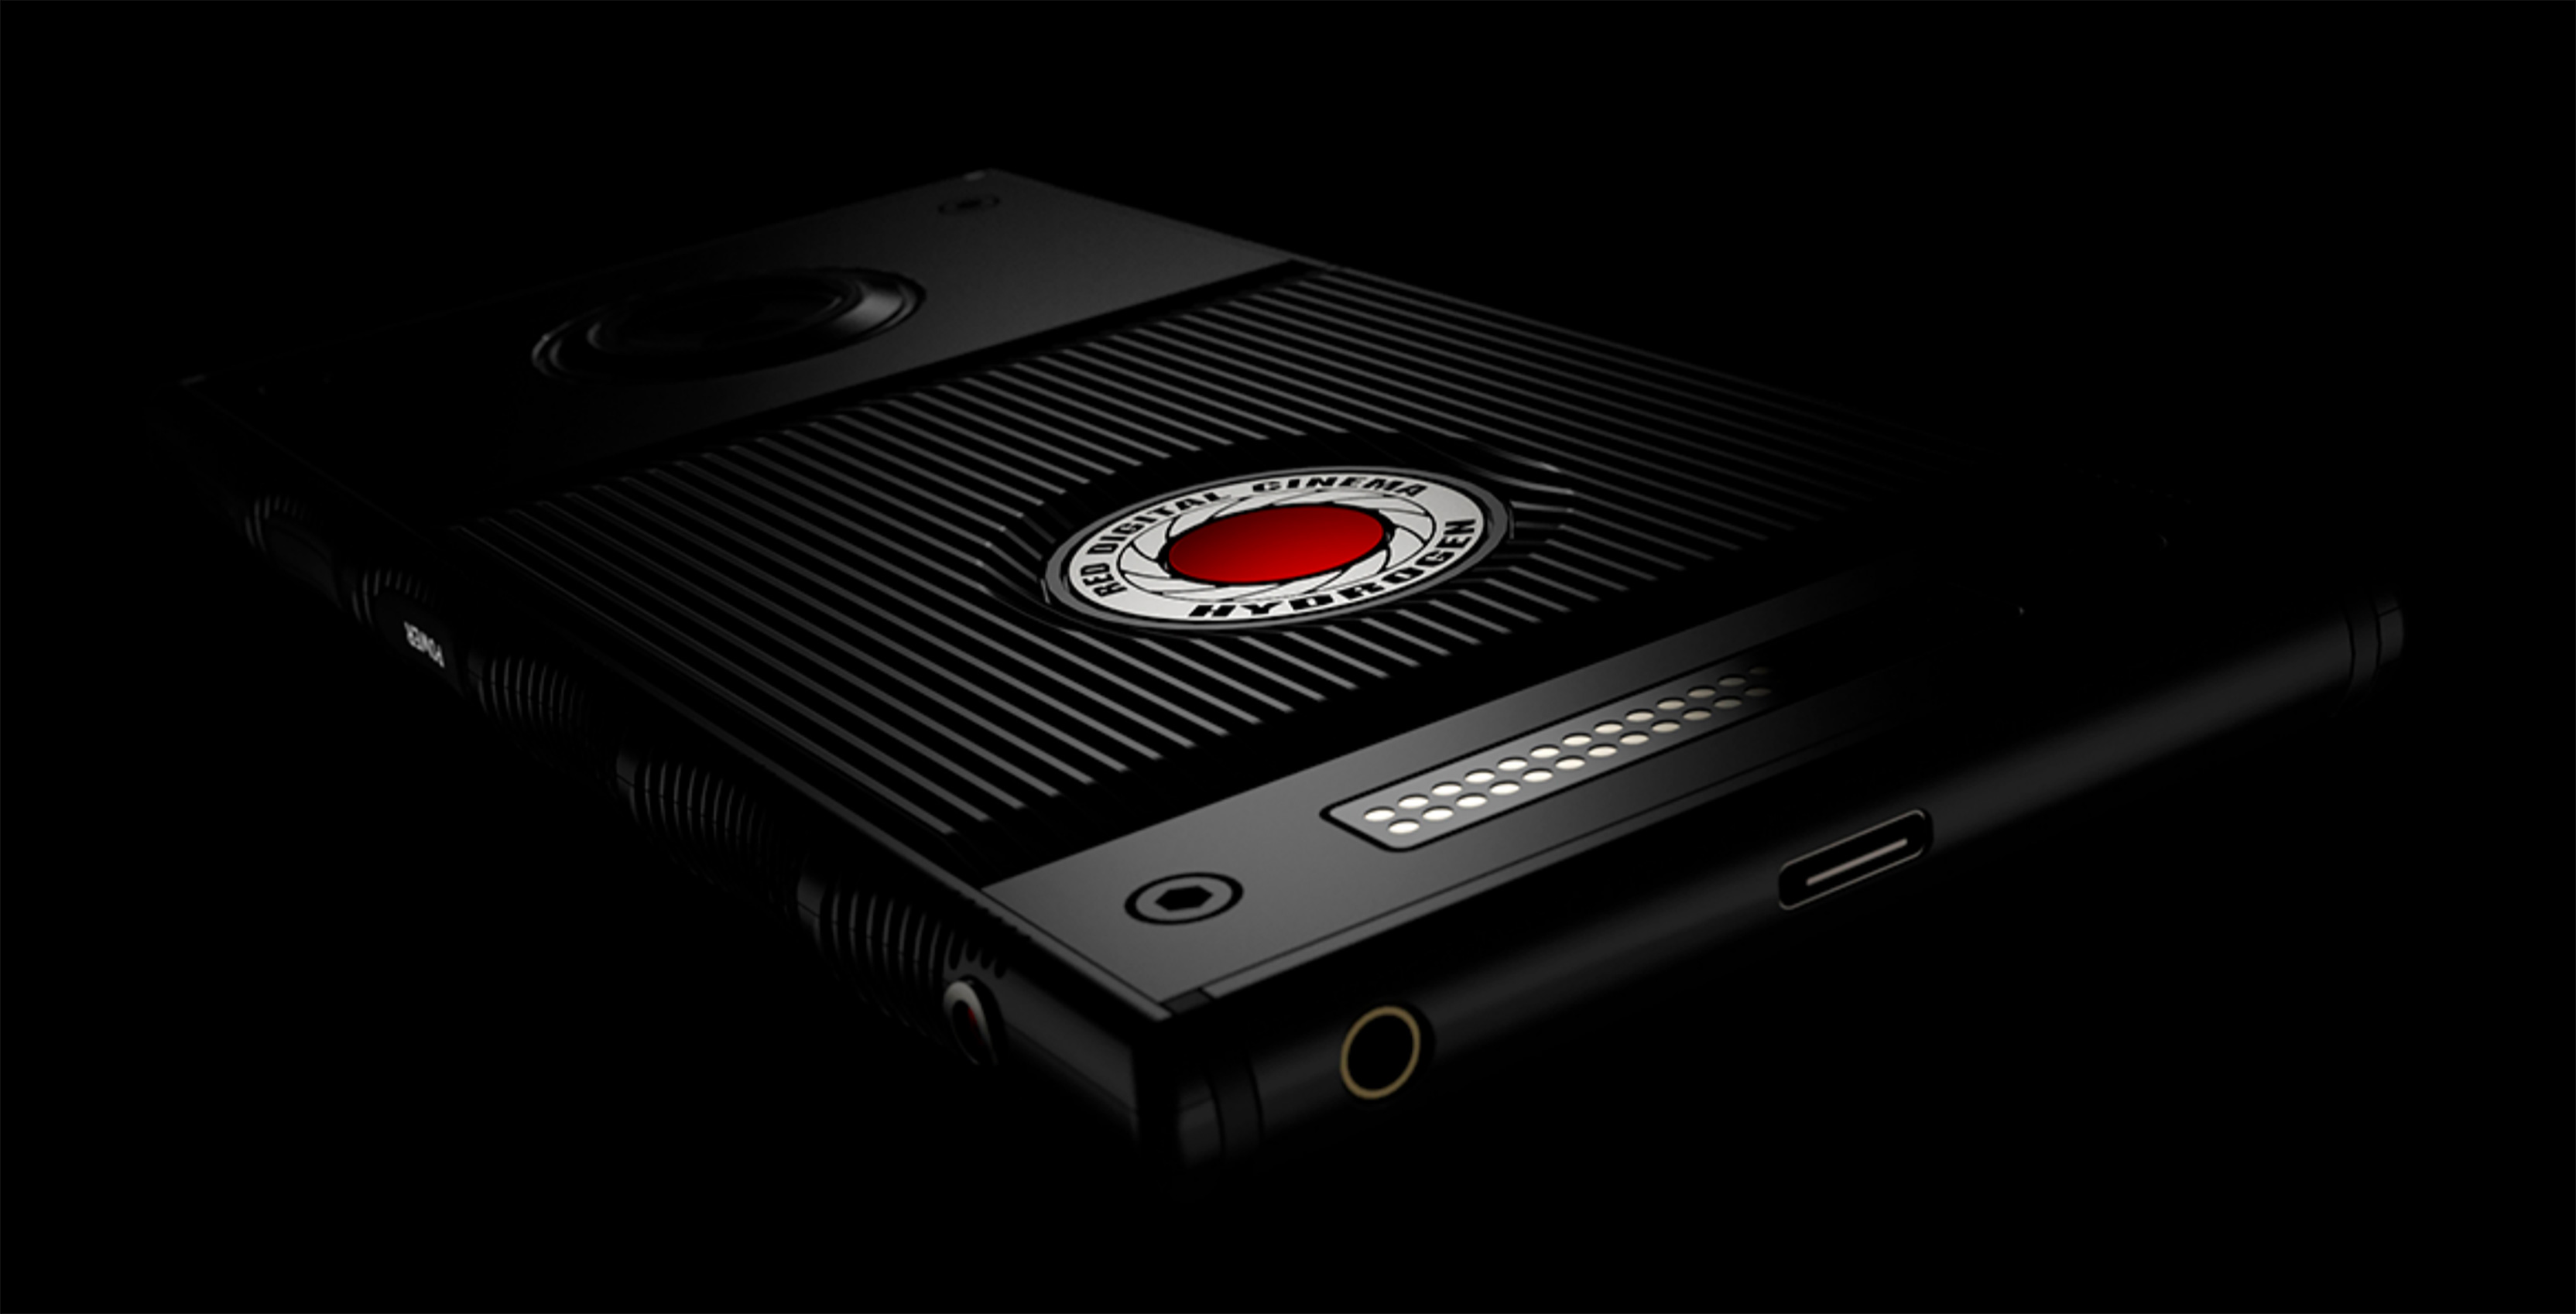 RED finally reveals what its 'holographic' phone screen actually is